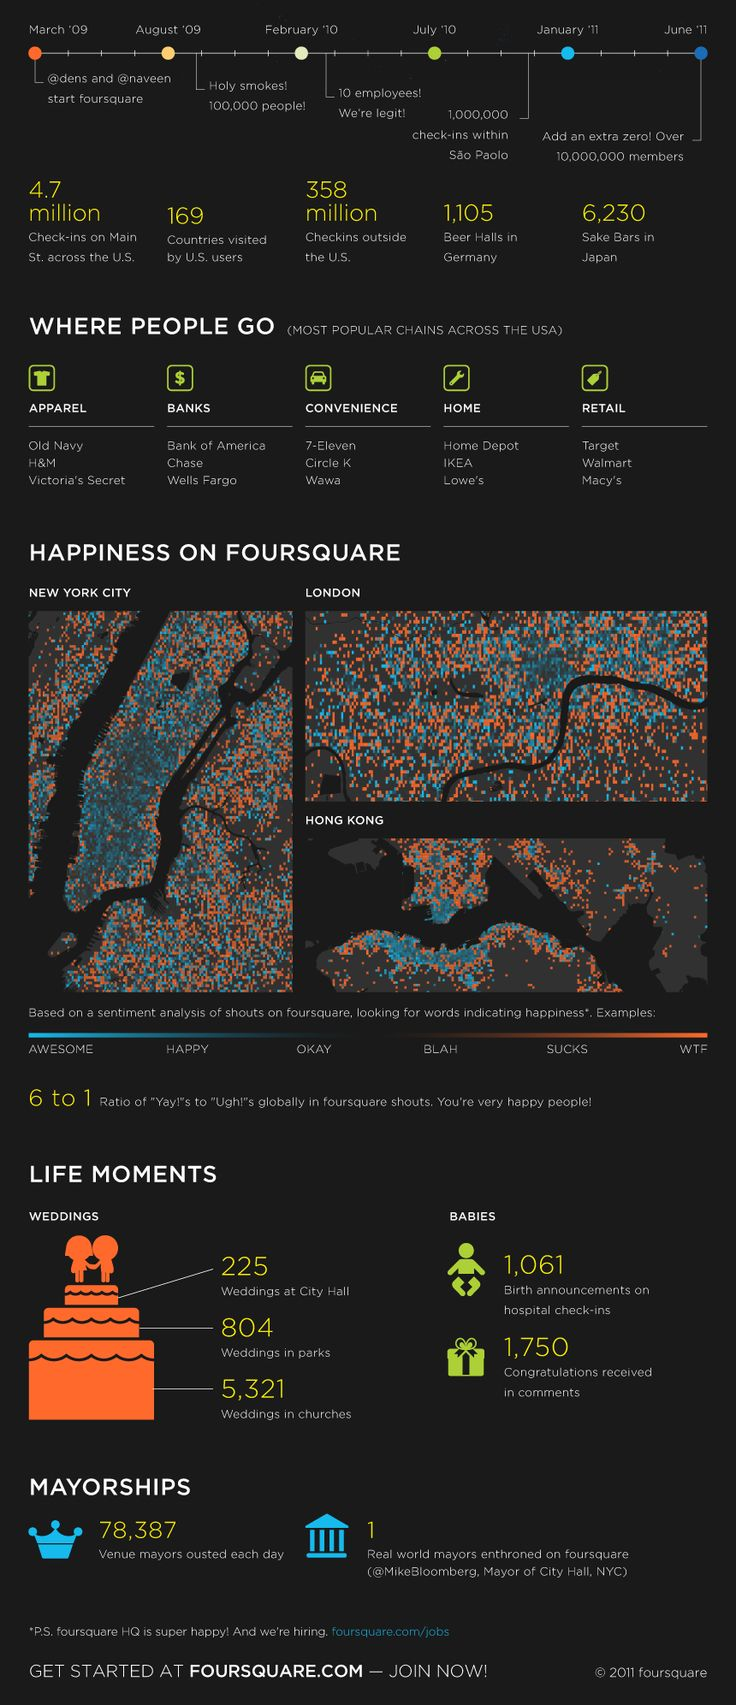 Infographics: Foursquare, where people go, happiness